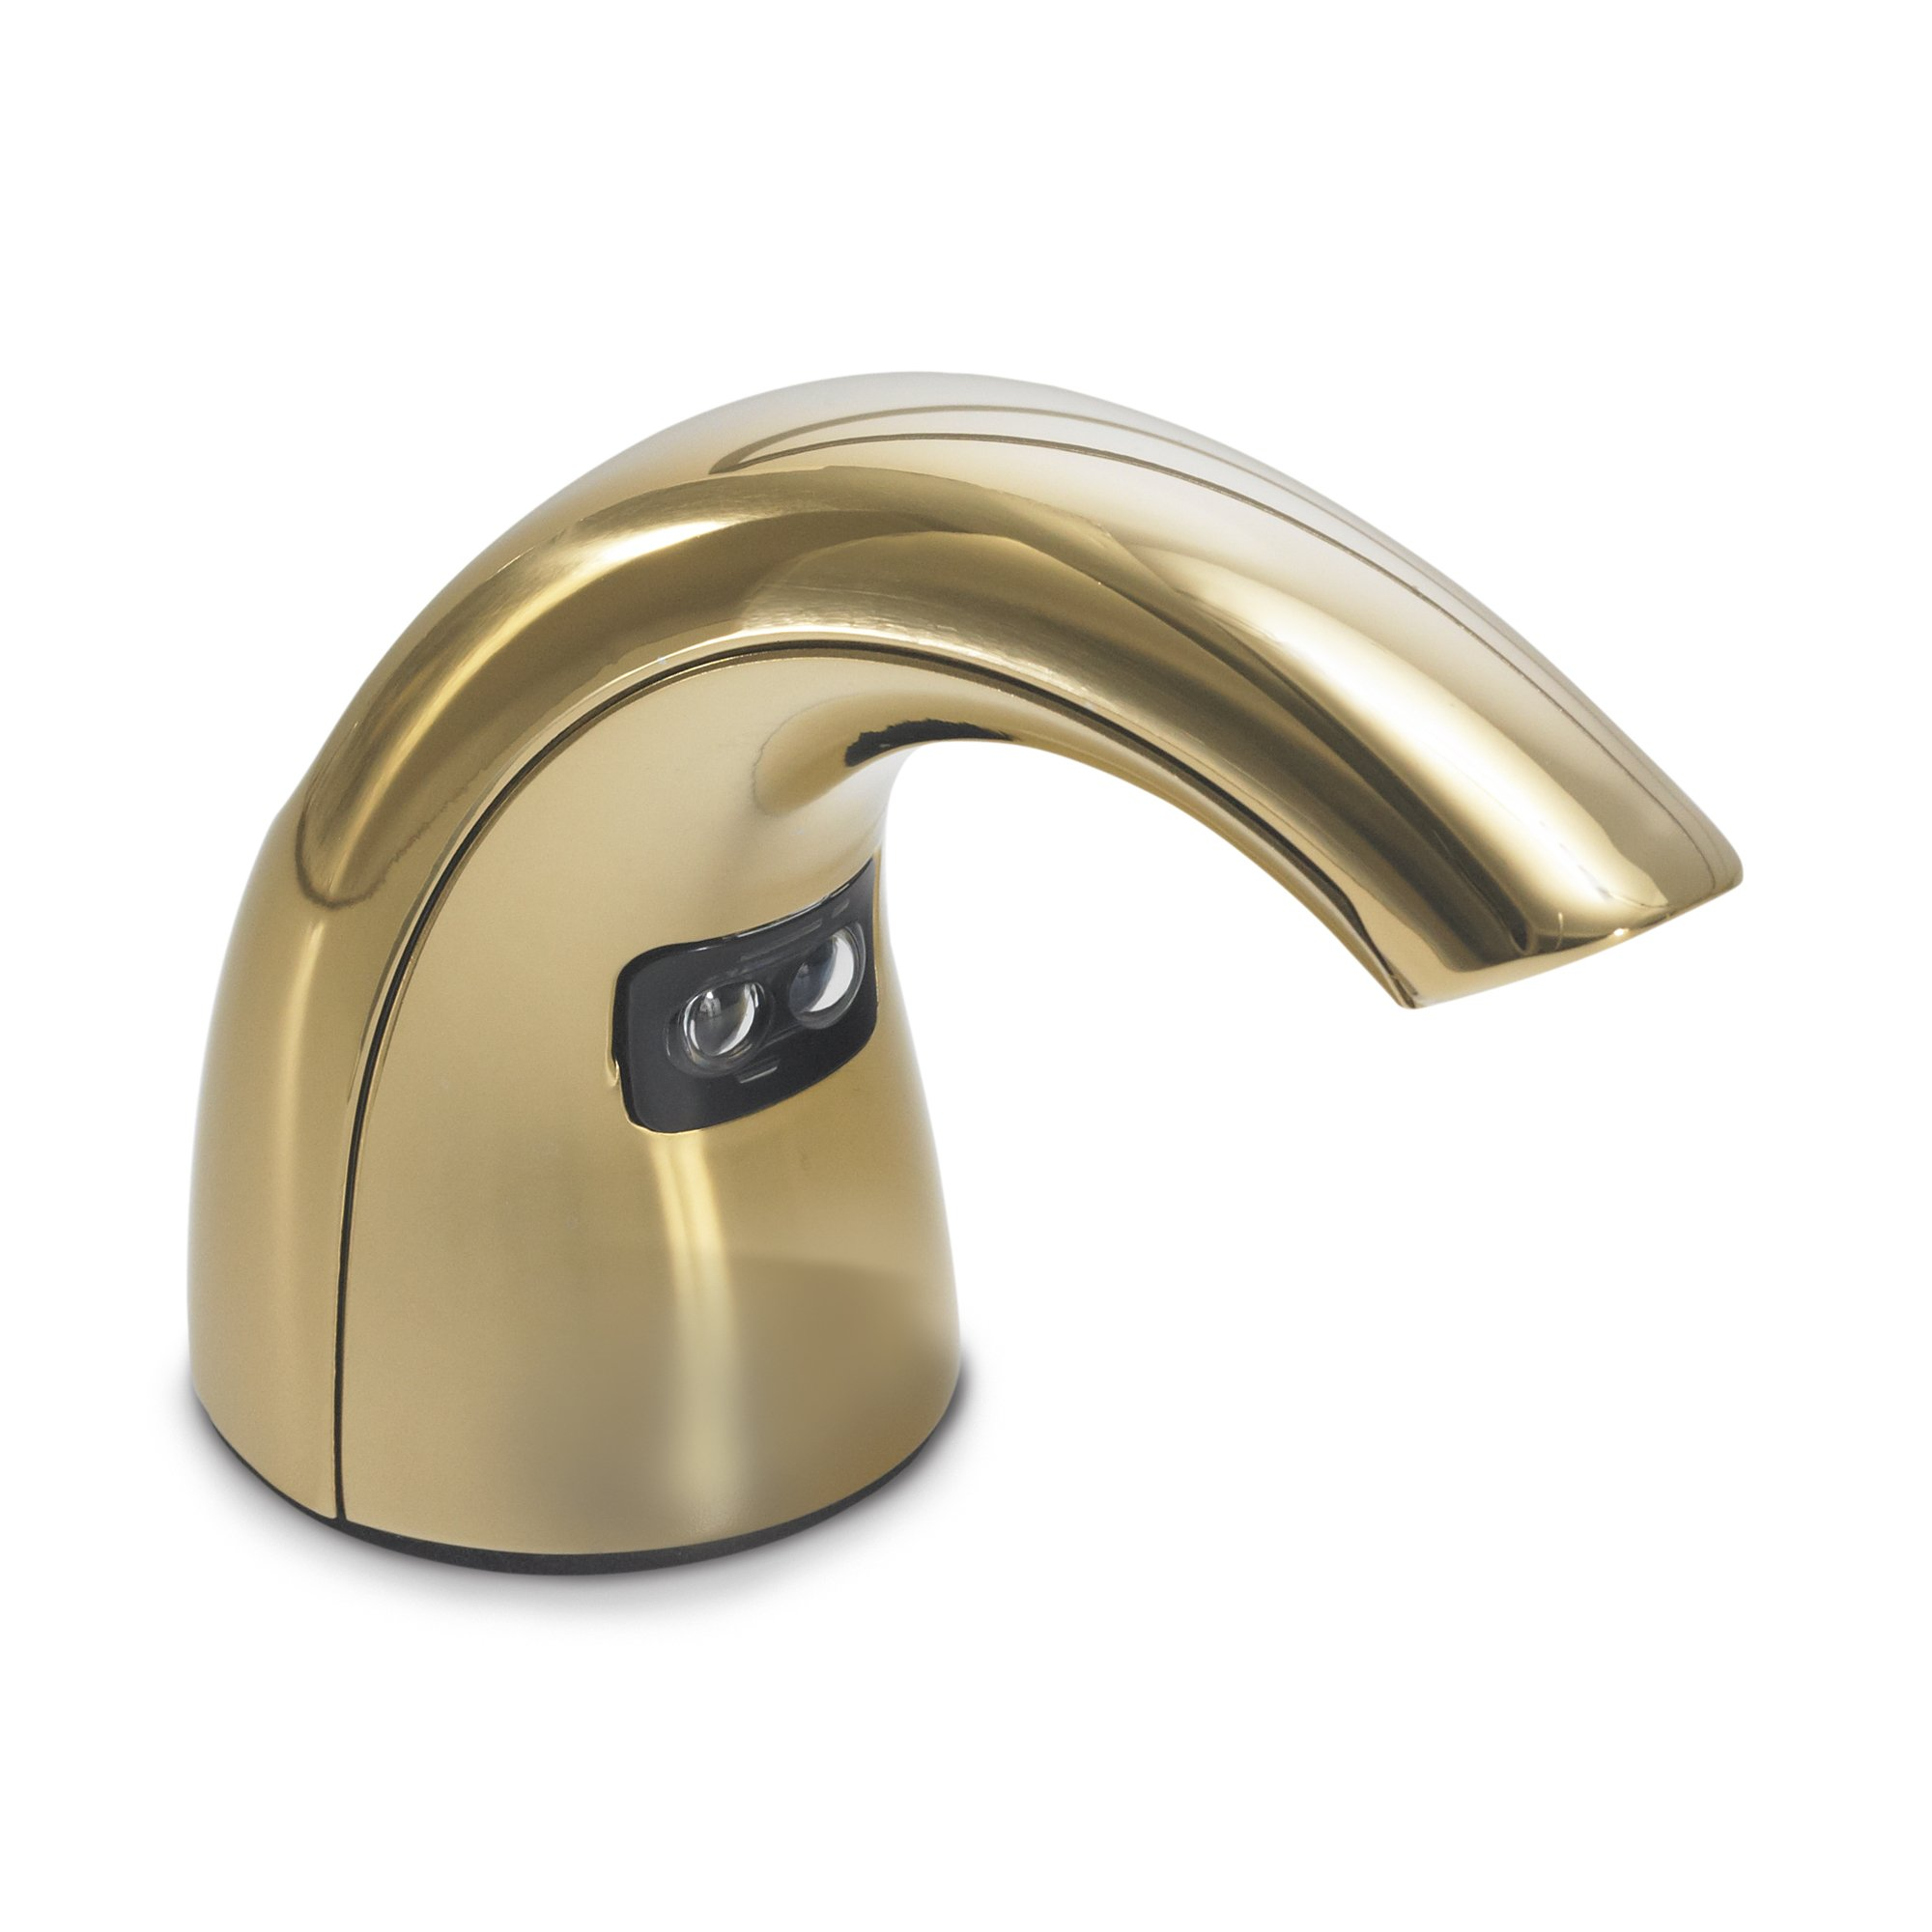 GOJO 8560-01 CXT Touch Free Counter Mount Dispensing System, Gold Tone by Gojo